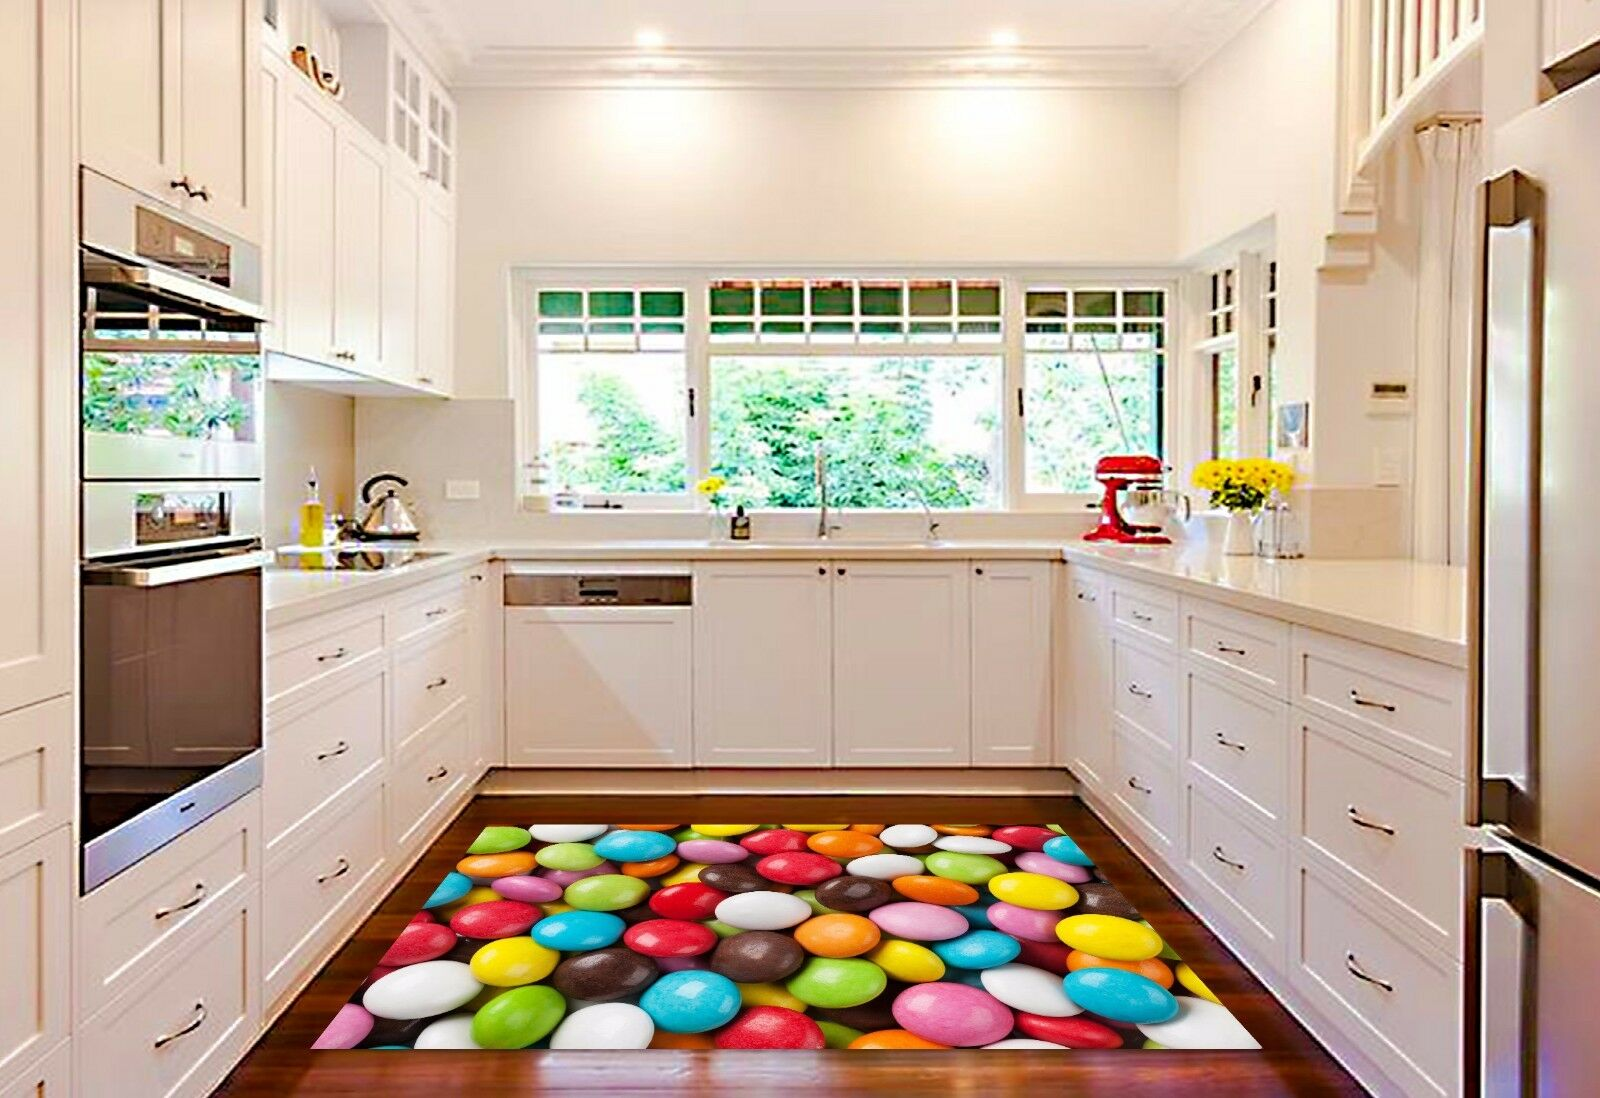 3D Rainbow Candy Candy Candy 845 Kitchen Mat Floor Murals Wall Print Wall Deco UK Carly 7322e6